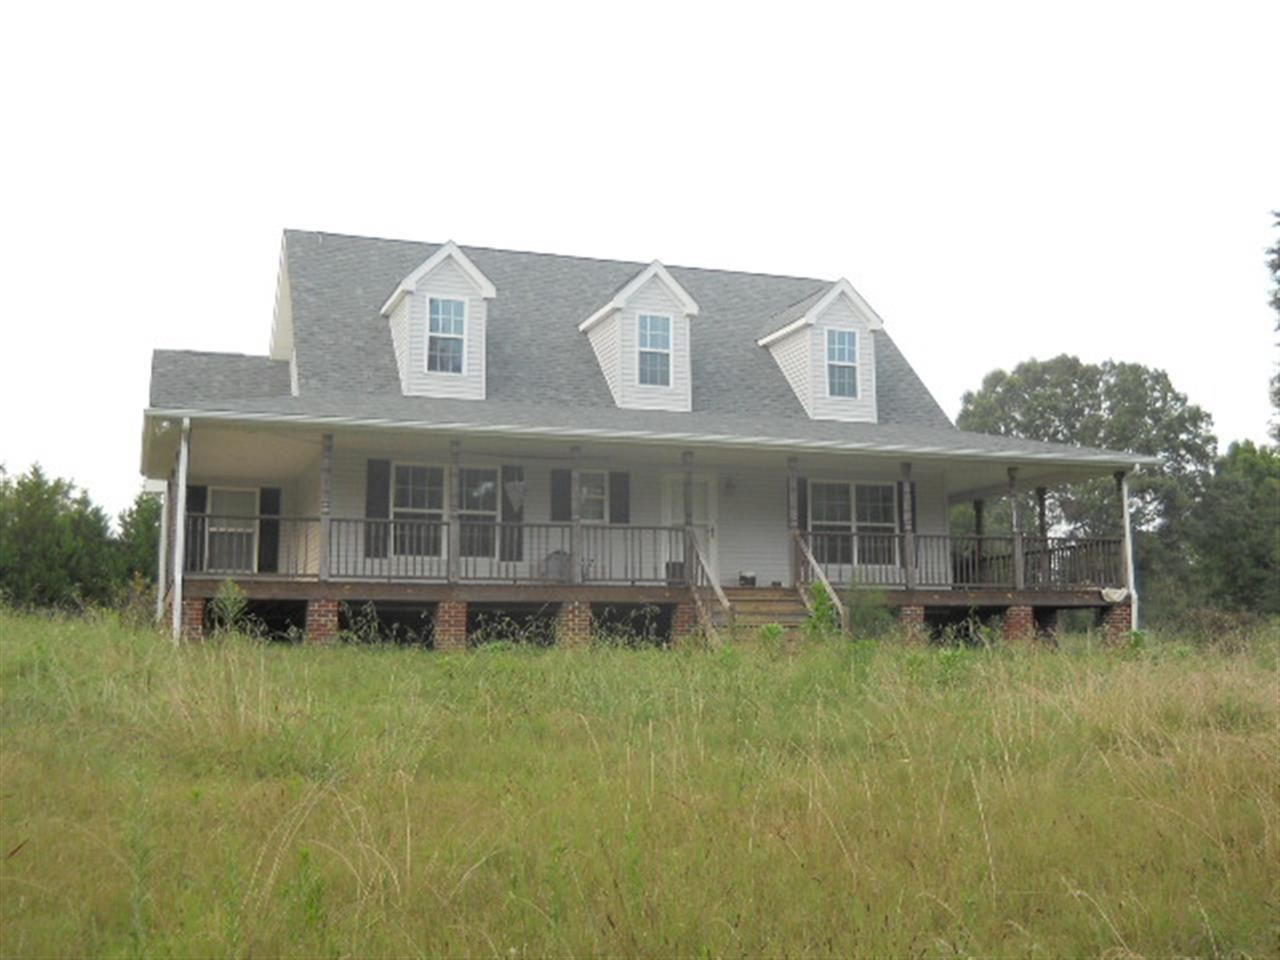 13 acres in Chester, South Carolina